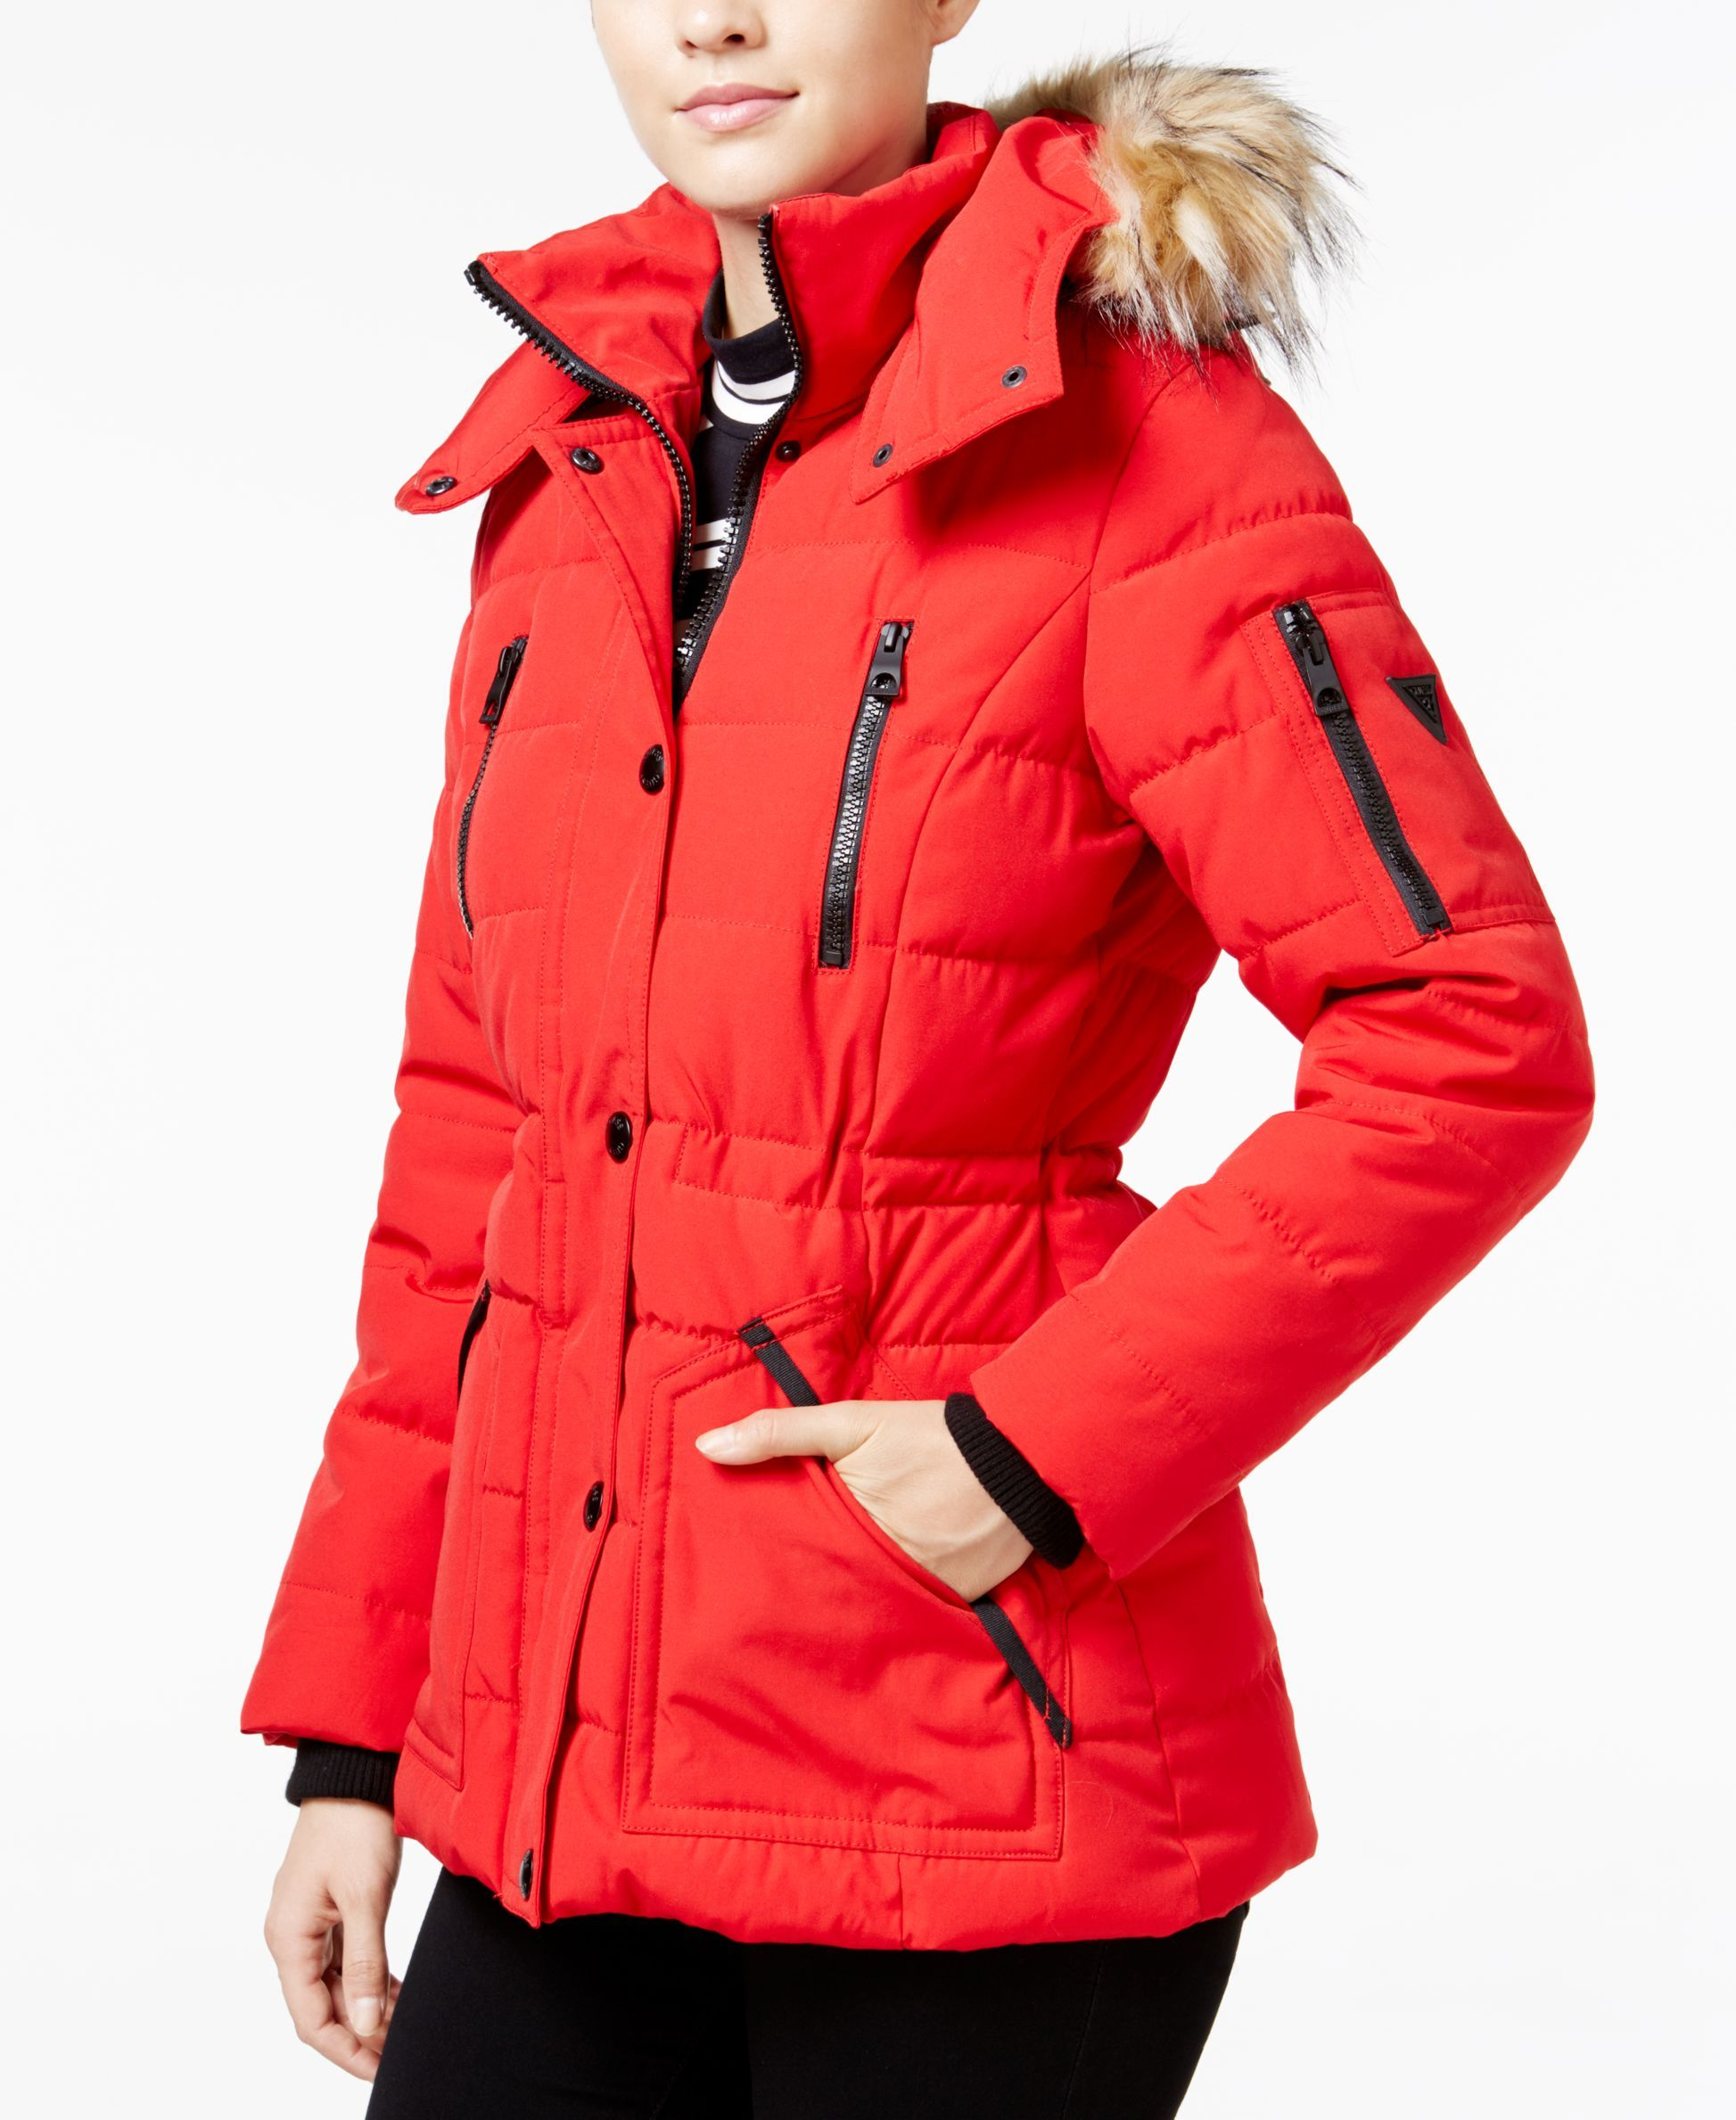 Guess Faux Fur Trim Hooded Puffer Coat Only At Macy S Puffer Coat Red Puffer Coat Faux Fur Trim Coat [ 2378 x 1947 Pixel ]